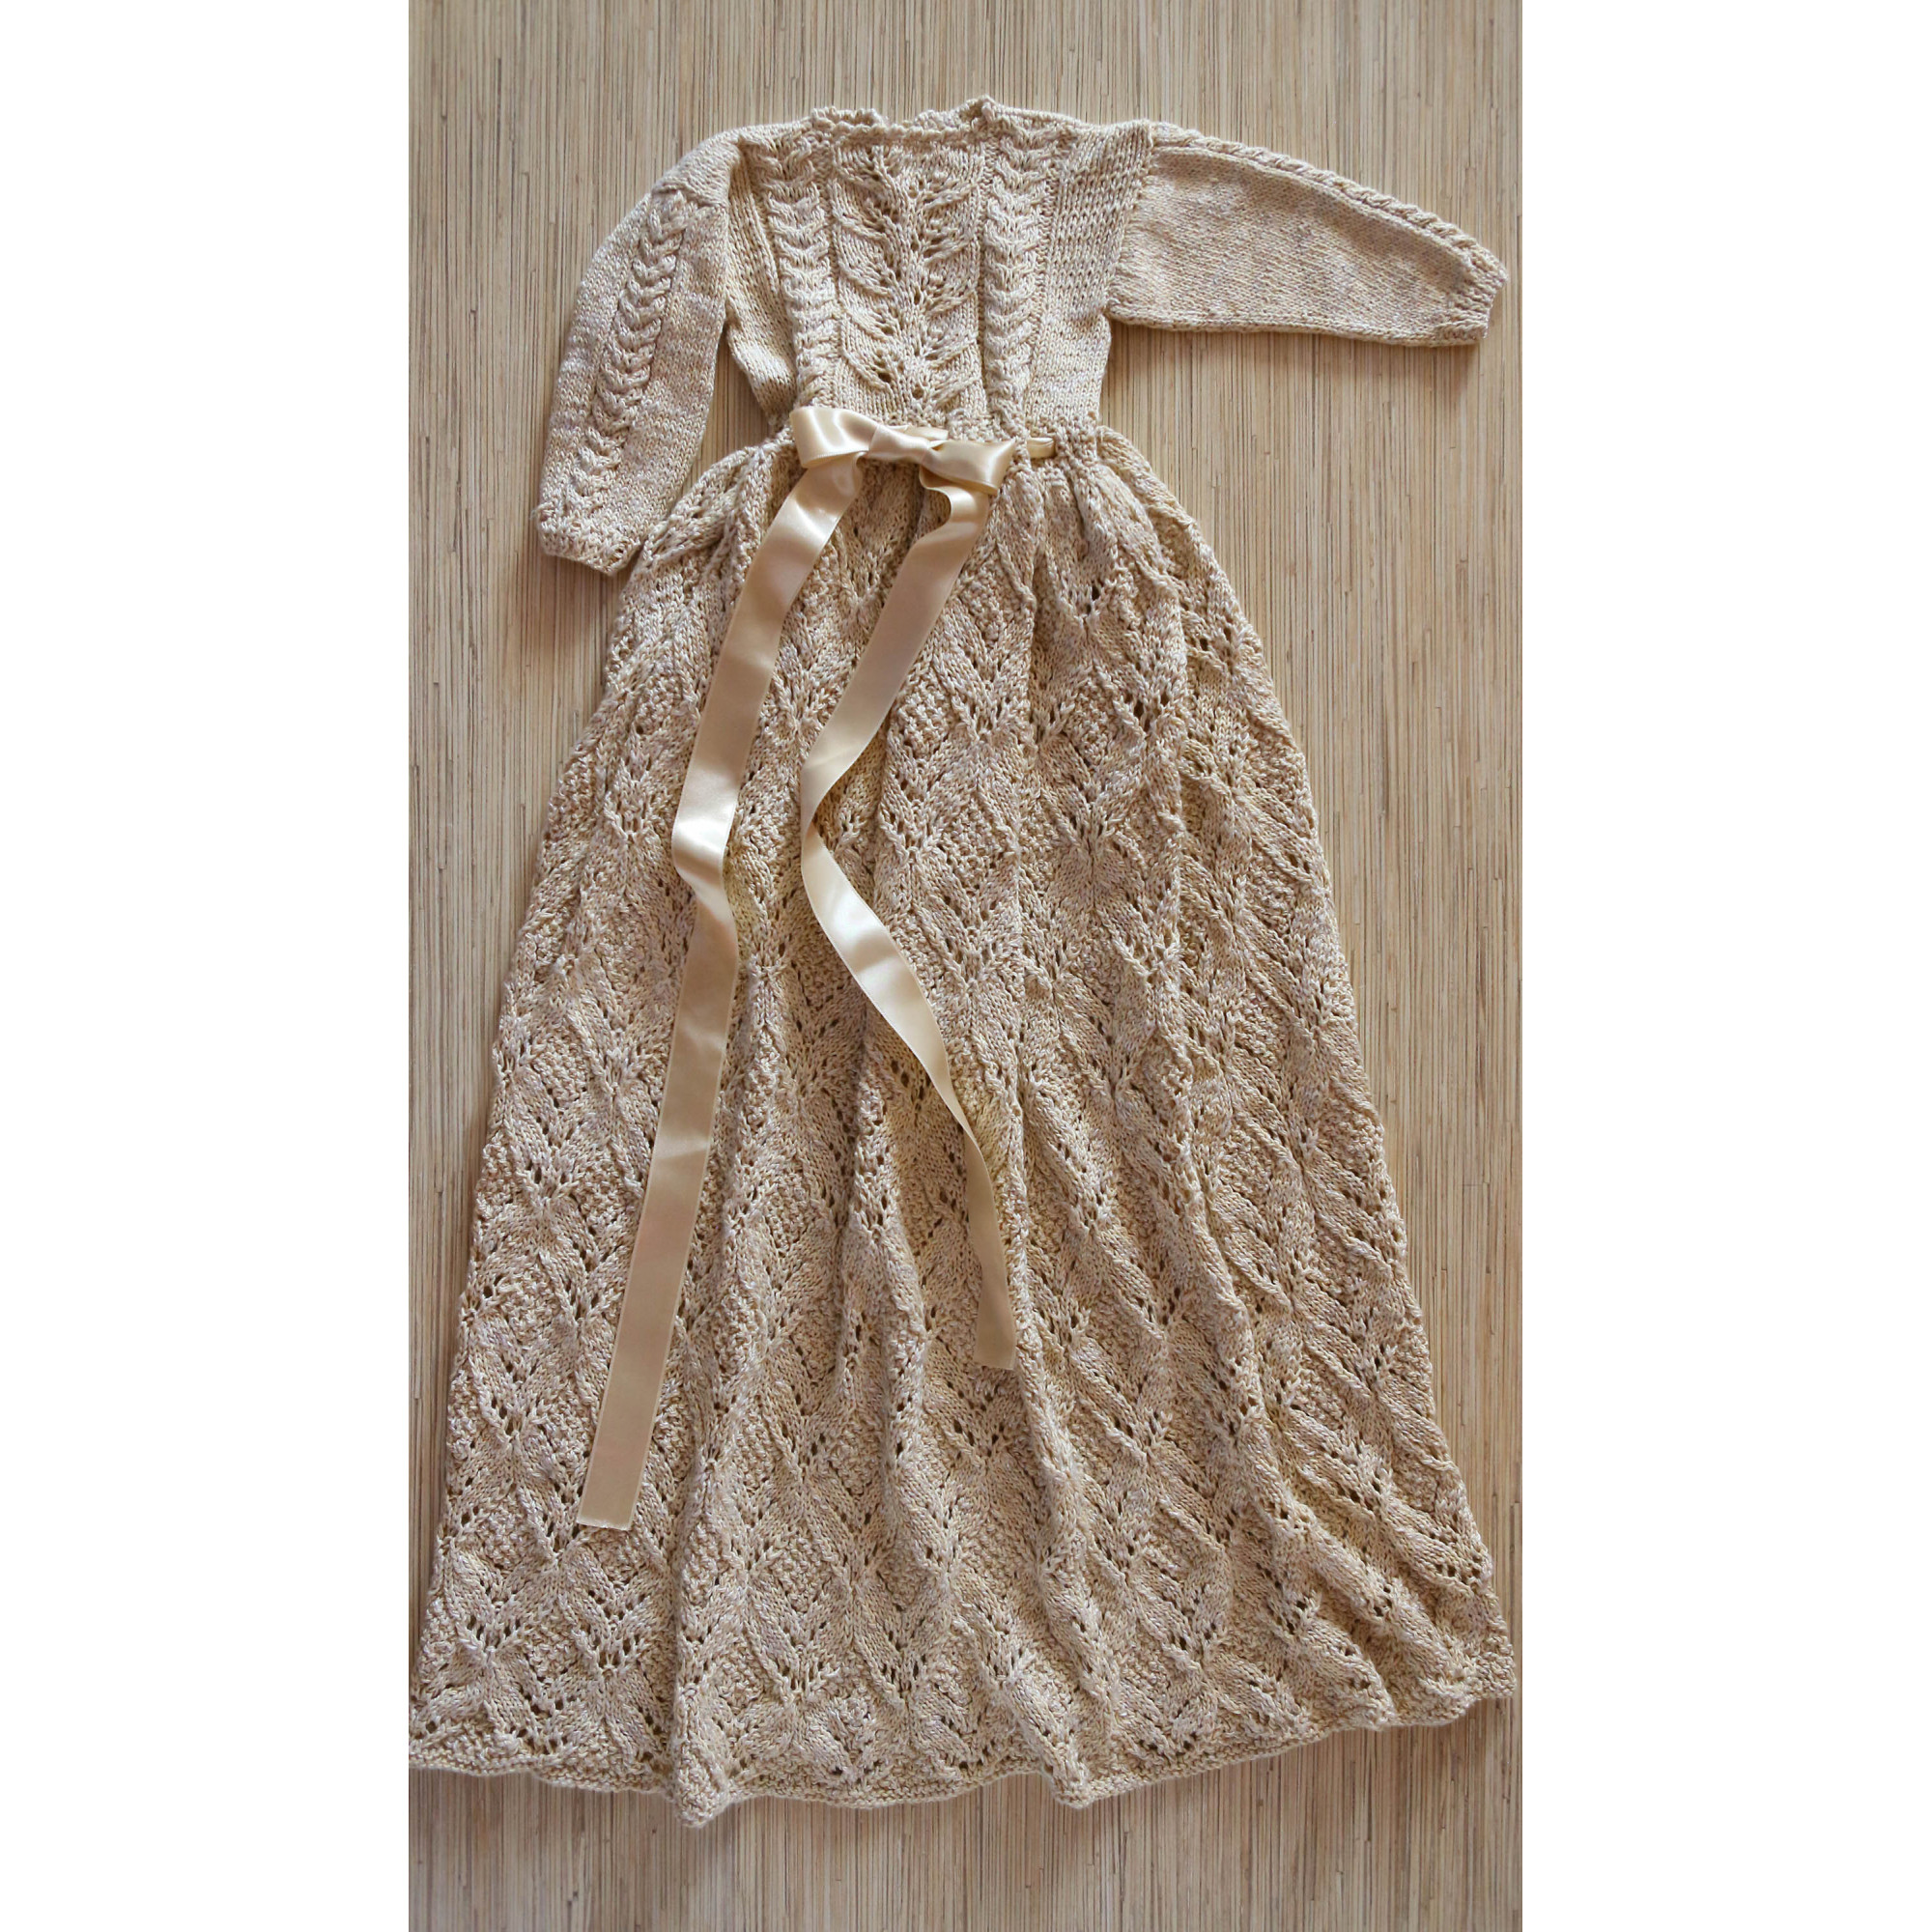 Raw Historical Clothes For Infant 6-9 months 2.1'-2.27'